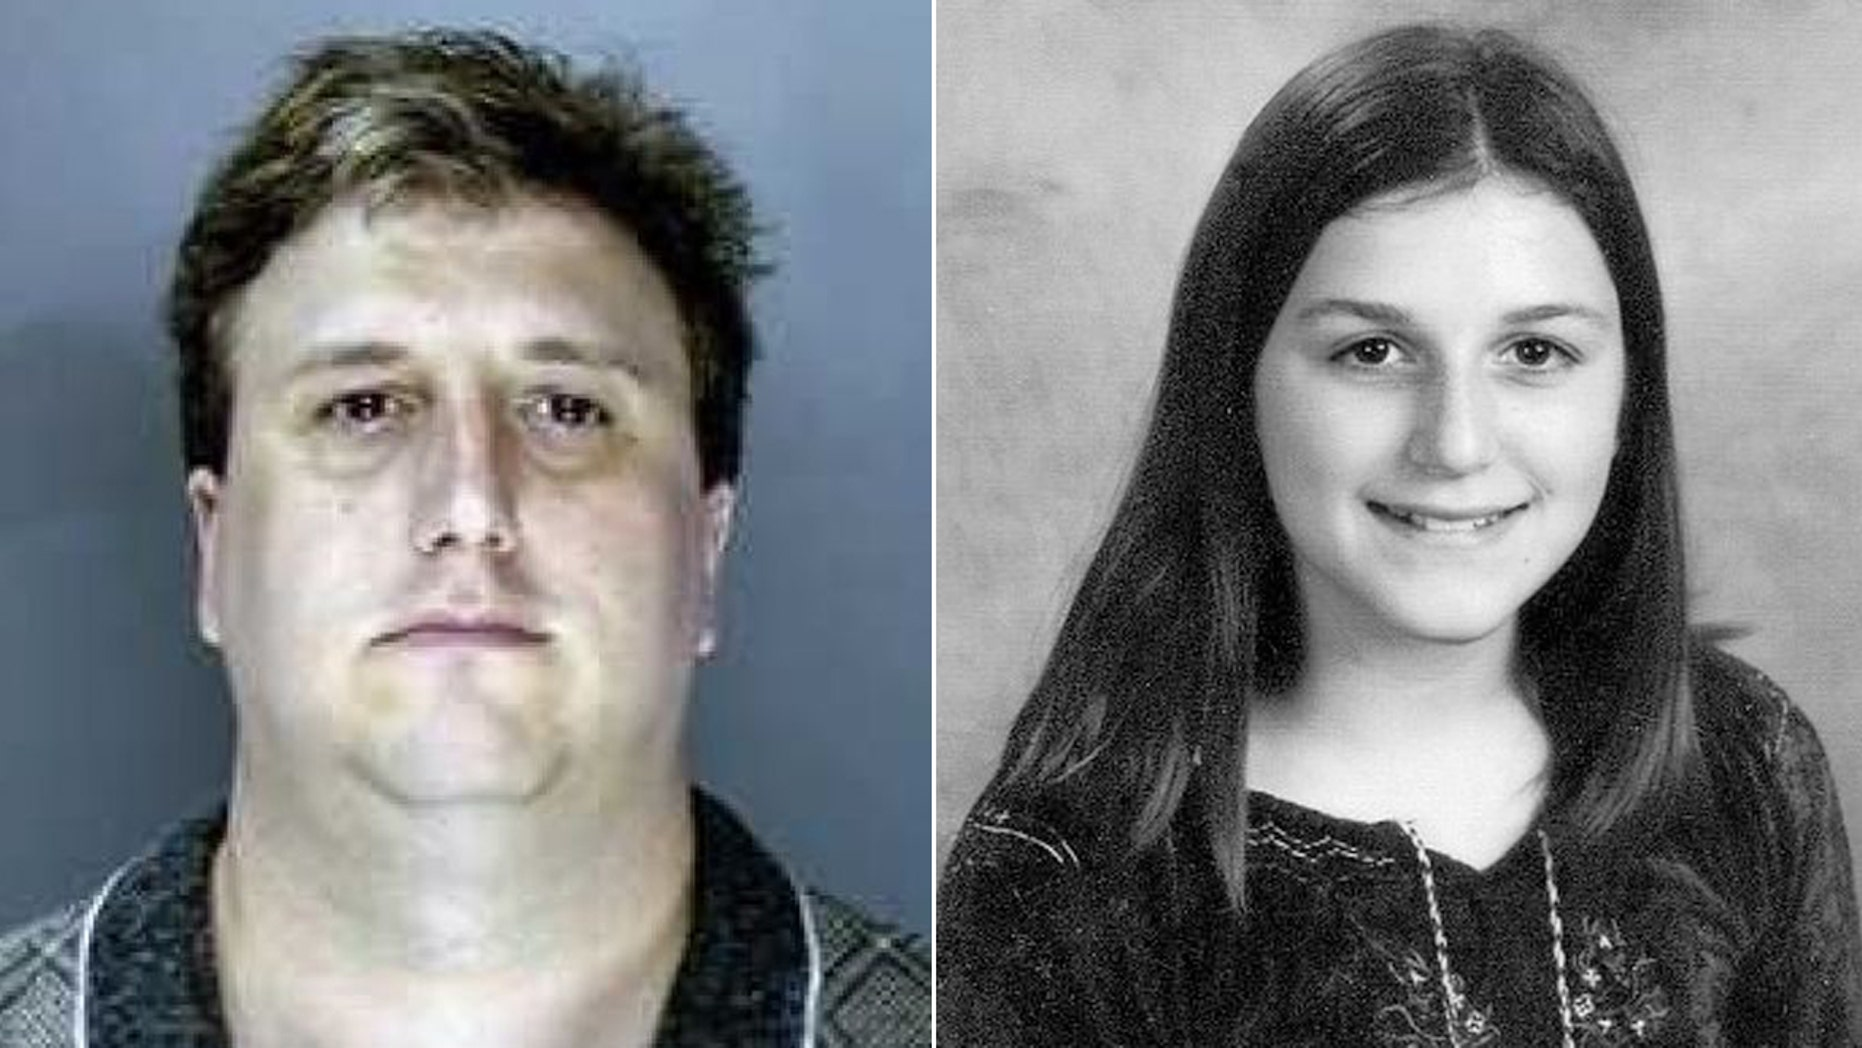 Mark Mesiti, 49, pleaded guilty in court earlier this month to a number of charges, including murdering his own daughter, Alycia Mesiti-Allen.